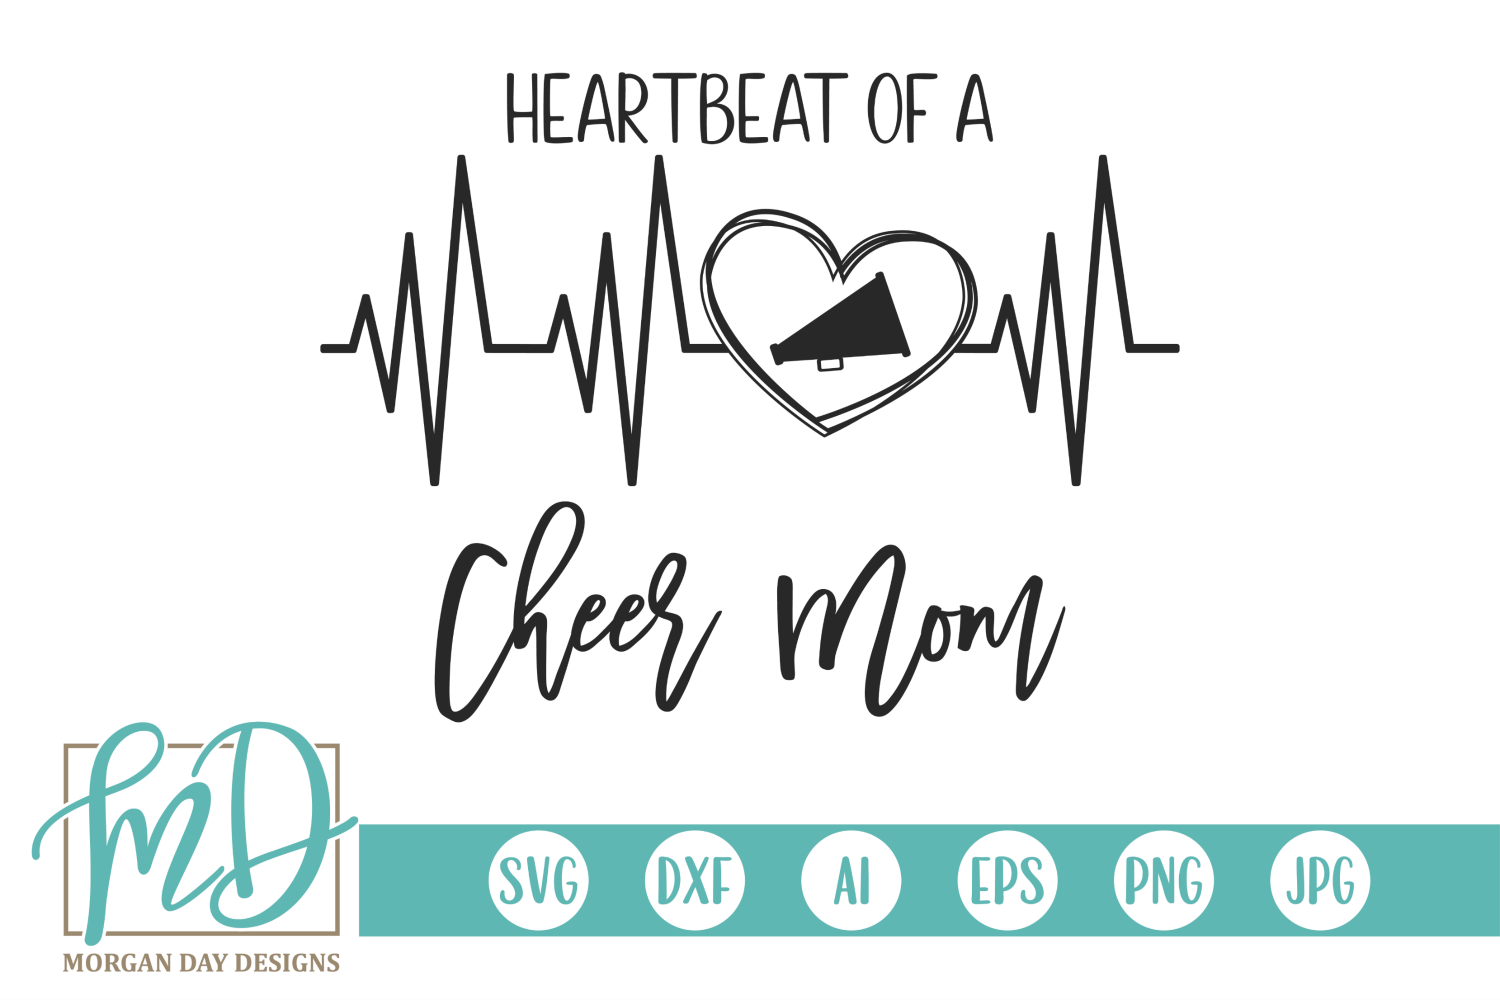 Download Free Heartbeat Of A Cheer Mom Graphic By Morgan Day Designs for Cricut Explore, Silhouette and other cutting machines.